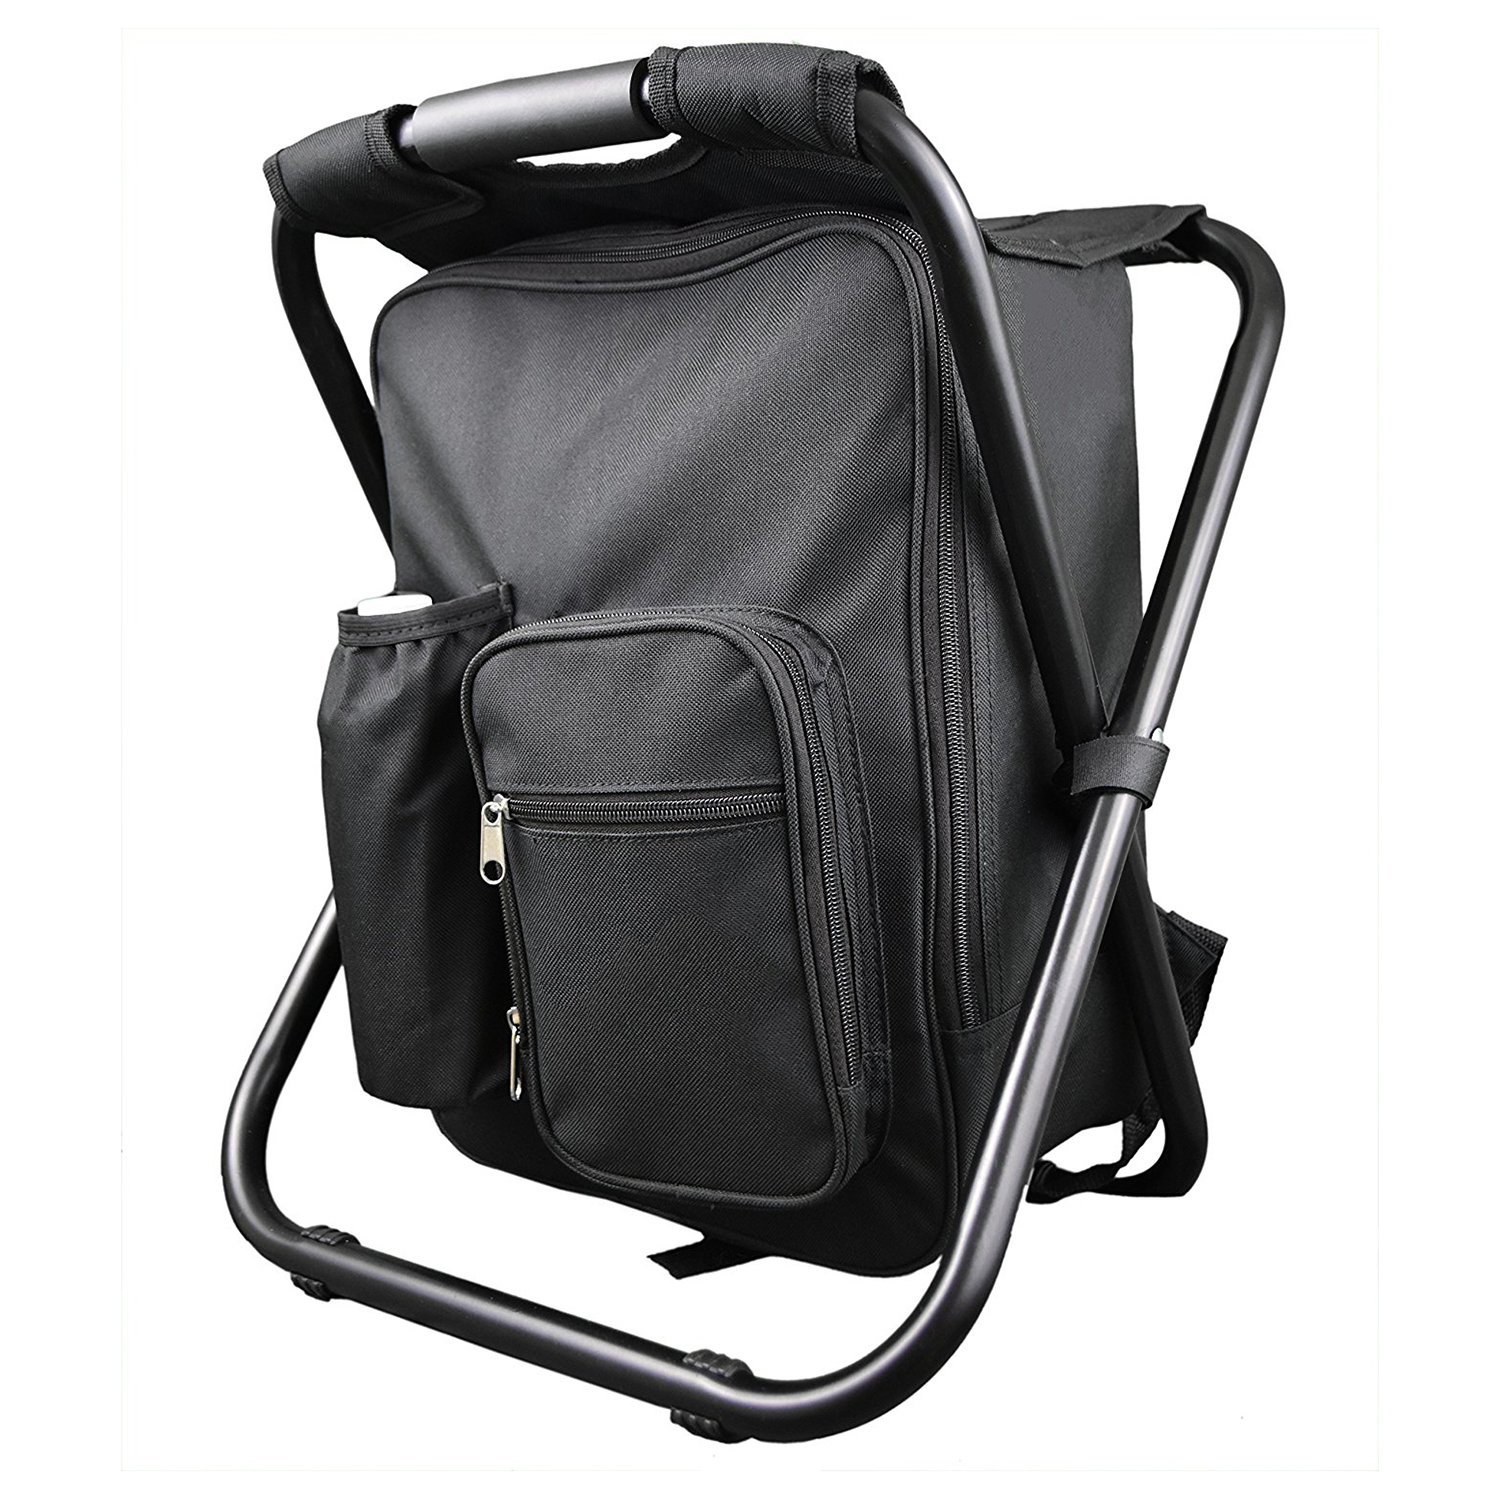 Hot Sale Backpack Chair Portable Camping Stool Foldable Chair with Double Layer Oxford Fabric Cooler Bag for Fishing Camping H fishing chair backpack camouflage oxford cloth large capacity fishing bag portable foldable stool fishing tackle tool chair bag